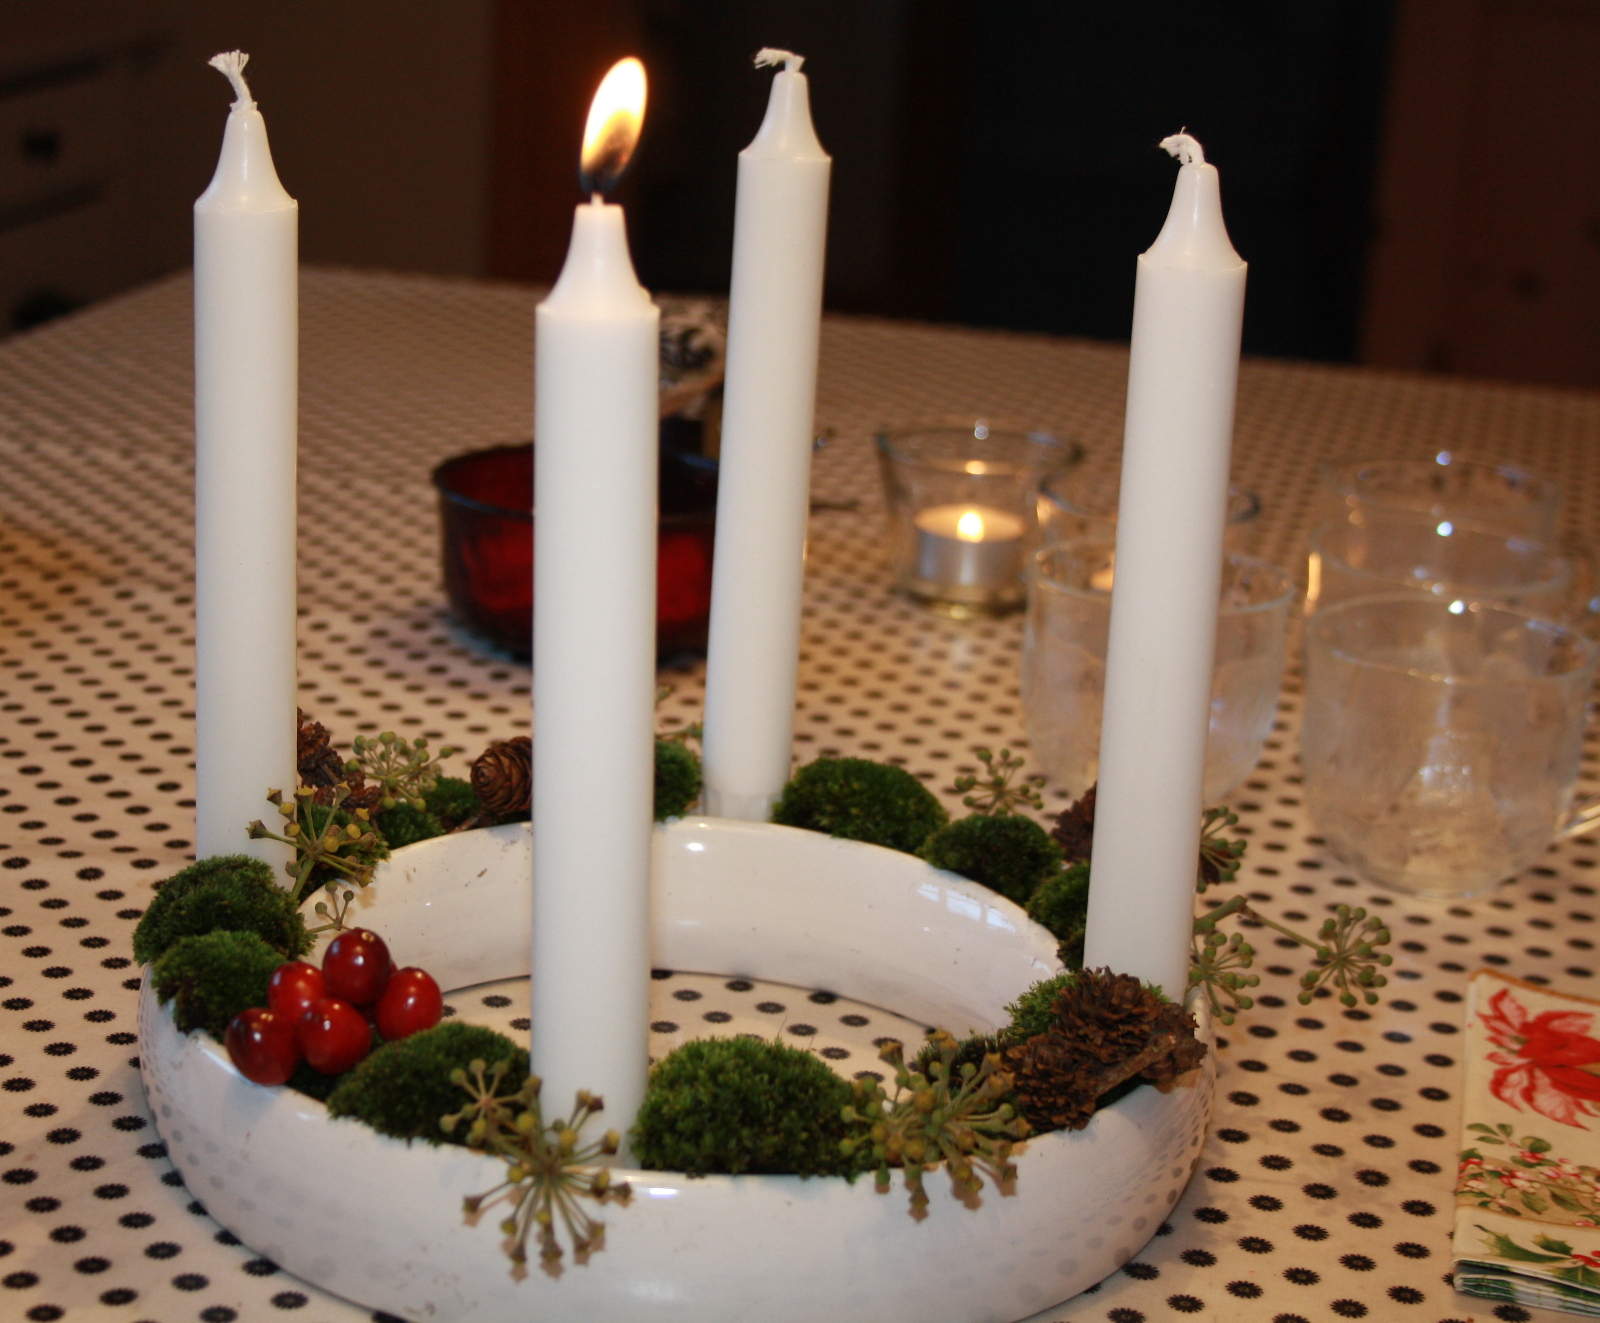 Adventskransen